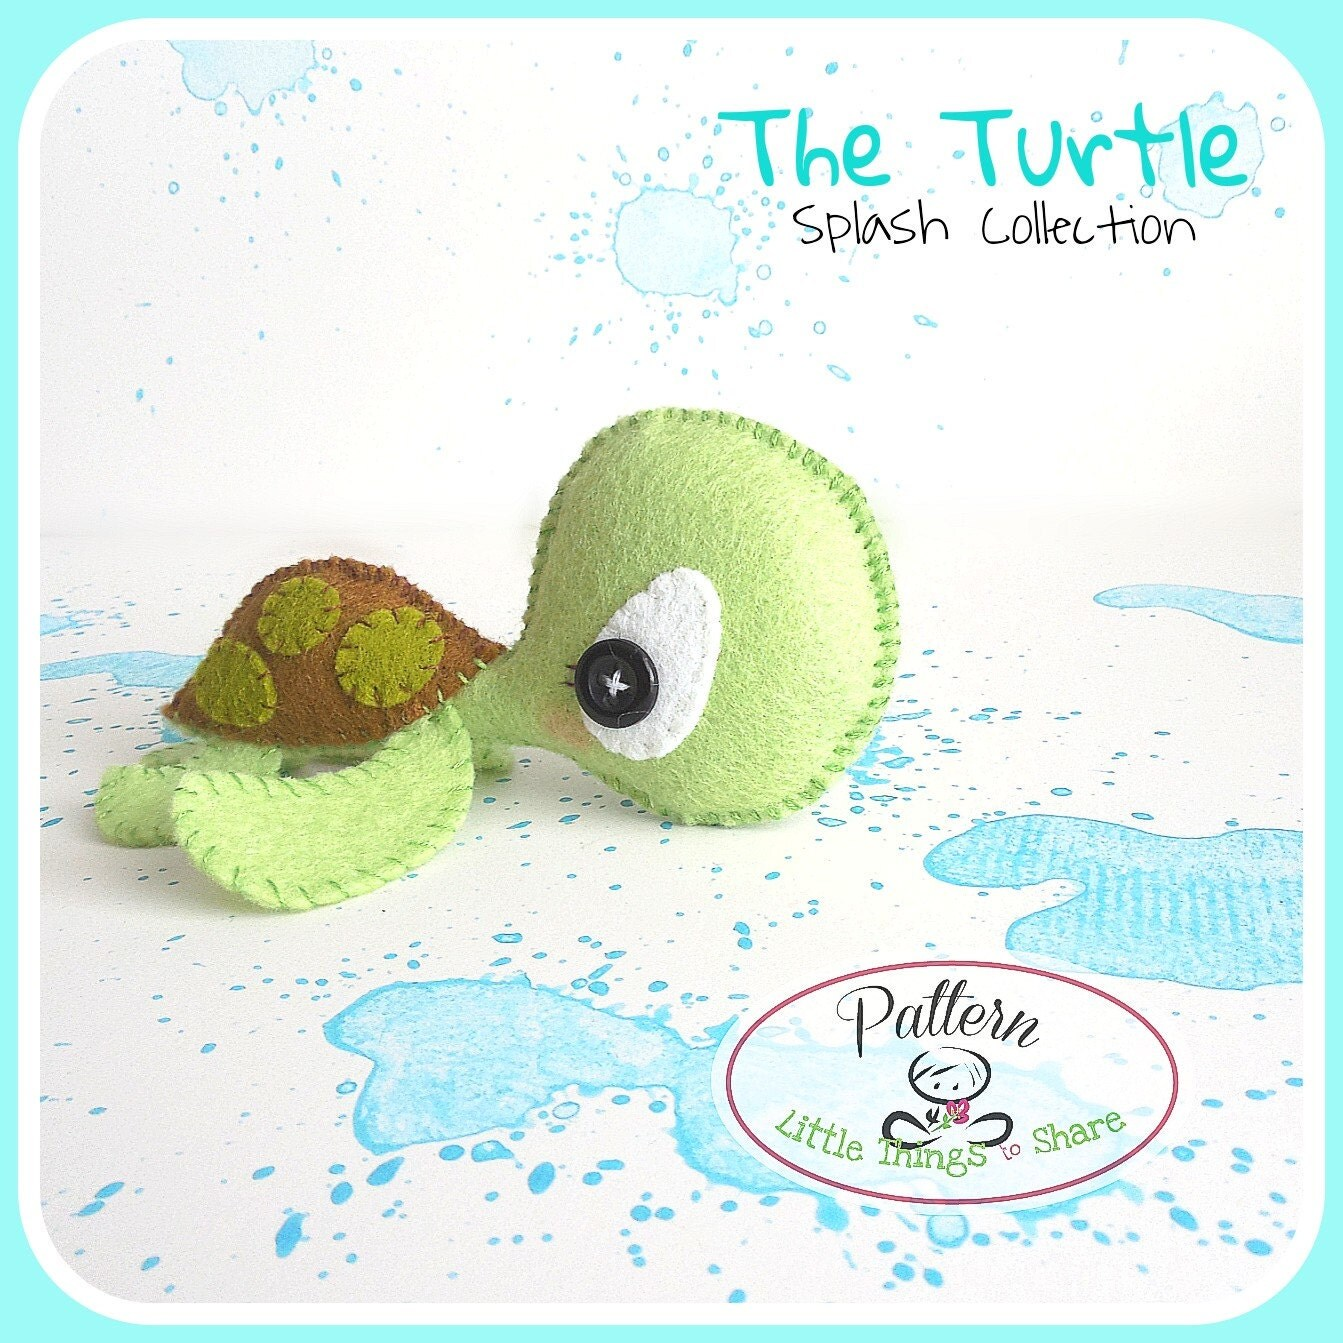 The Turtle Pattern Sea Animals Toy Diy Nursery Decor Instant Download Baby S Mobile Toy Cute